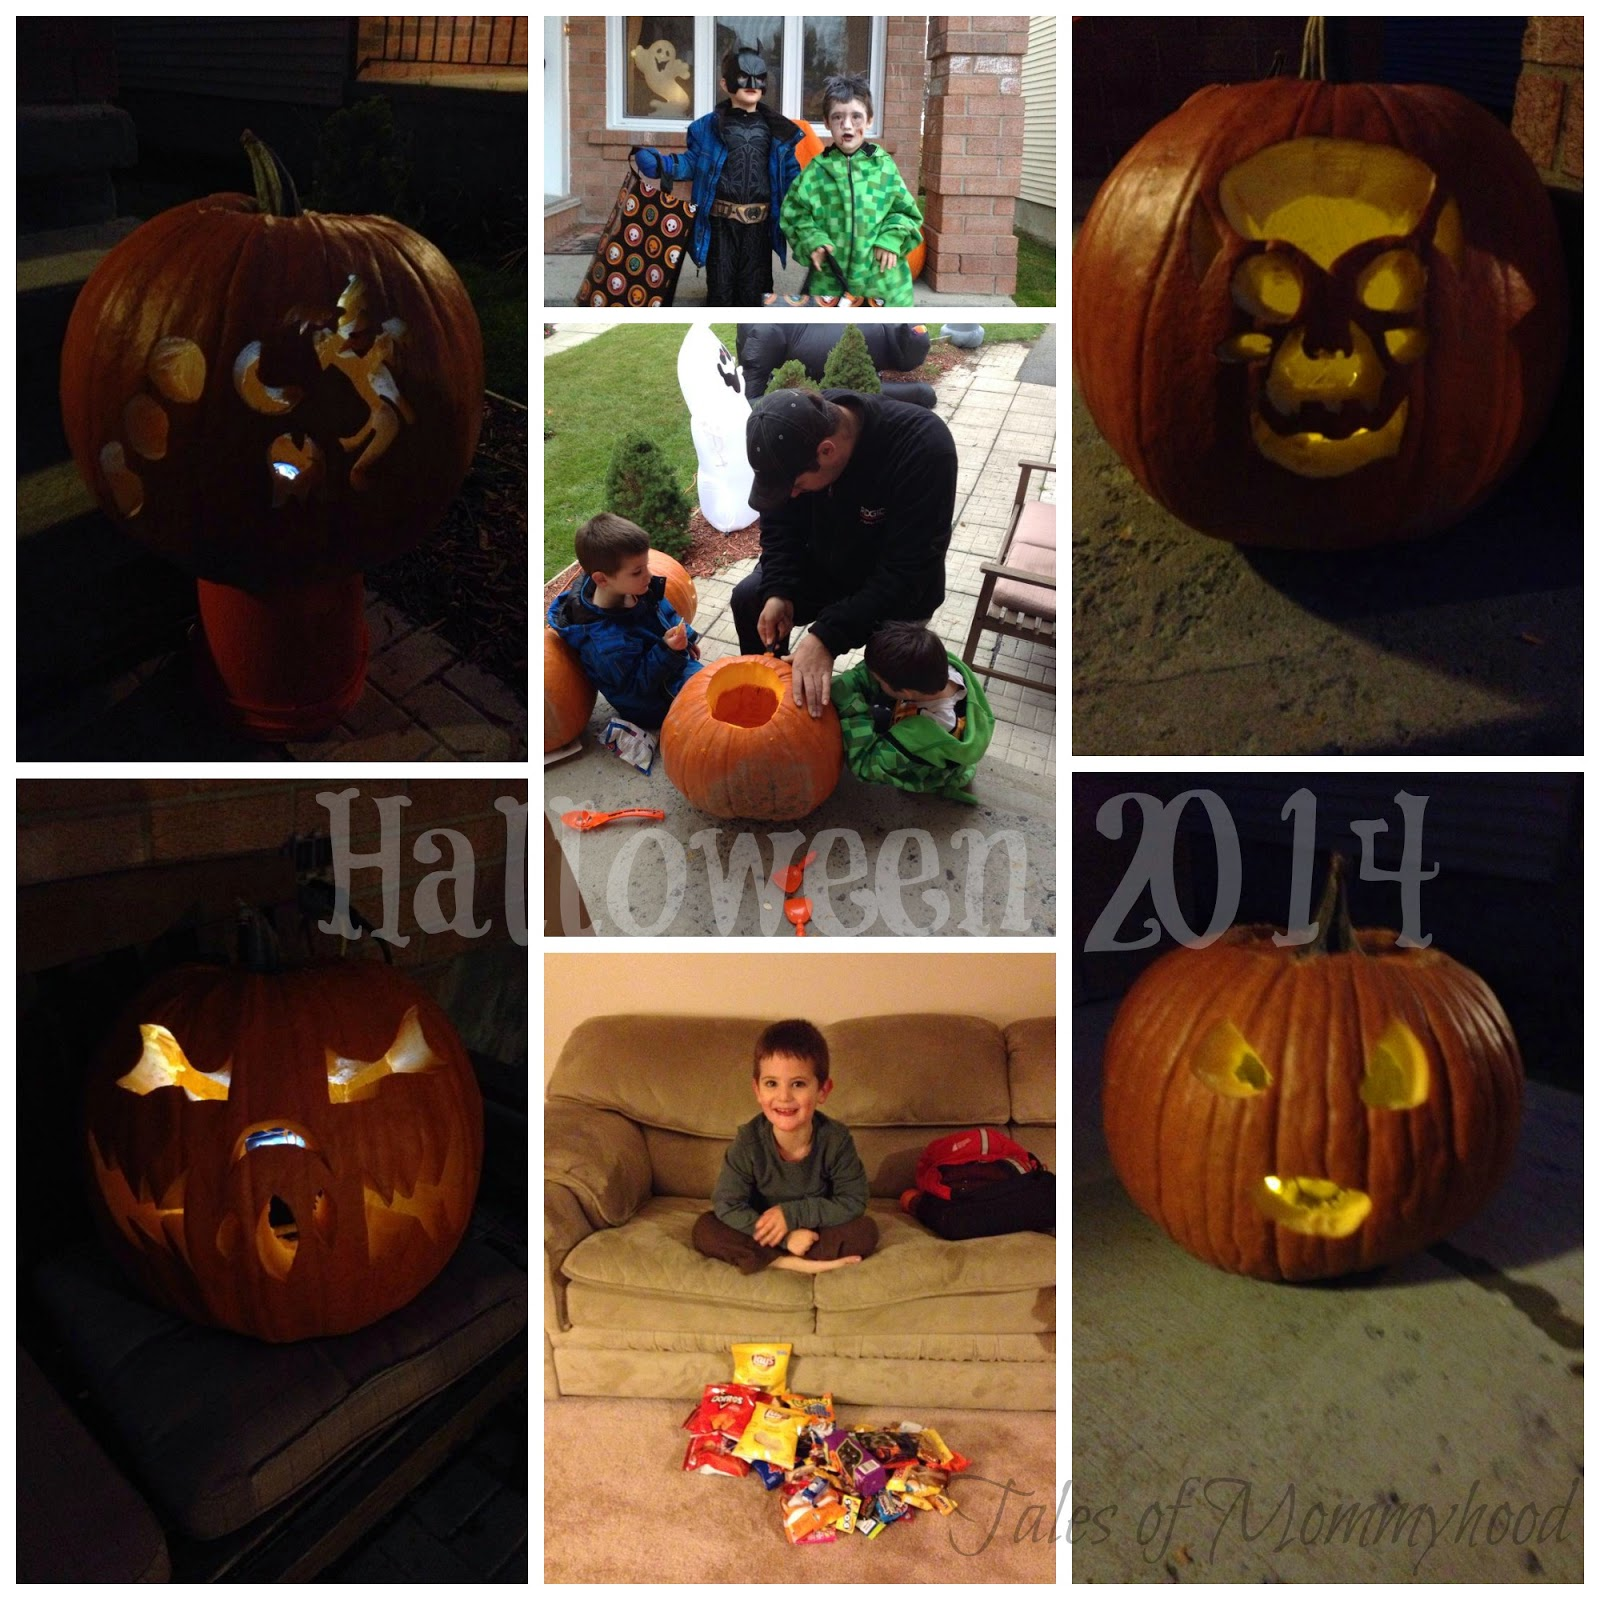 halloween, pumpkins, batman, zombie costume, minecraft